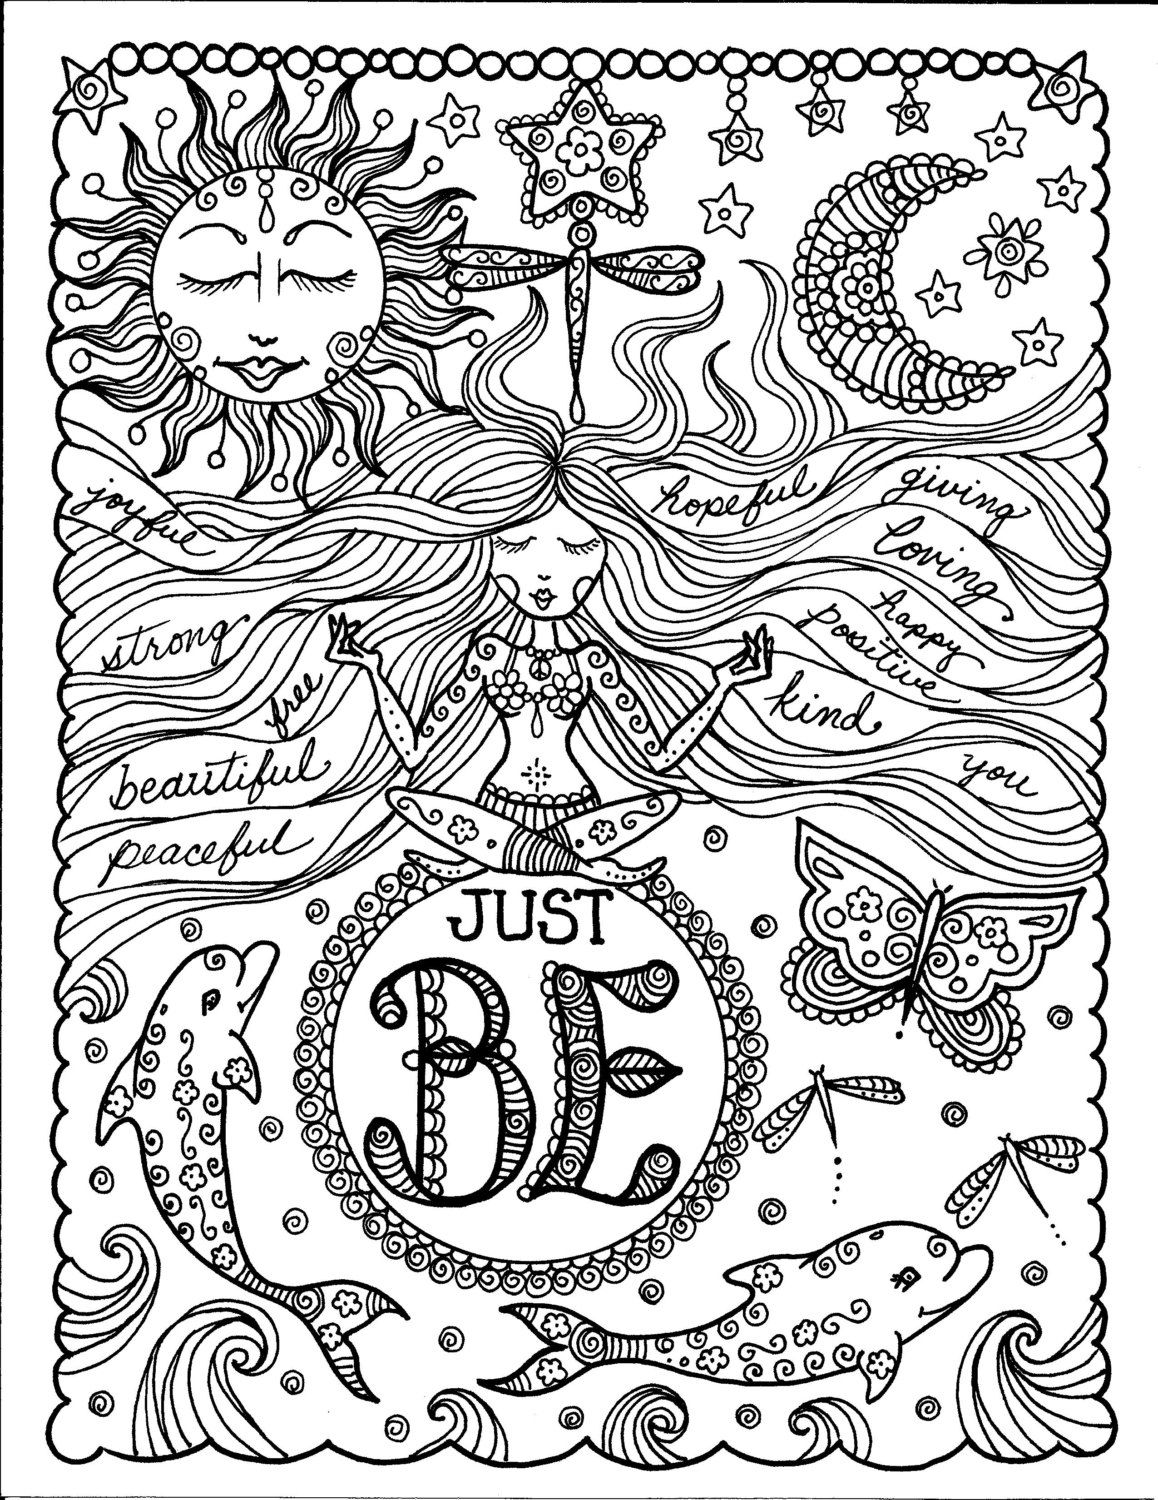 Instant Download Just Be Inspirational Art For You To Color Yoga Meditation Fun Coloring For Adults Coloring Books Coloring Pages Adult Coloring Pages